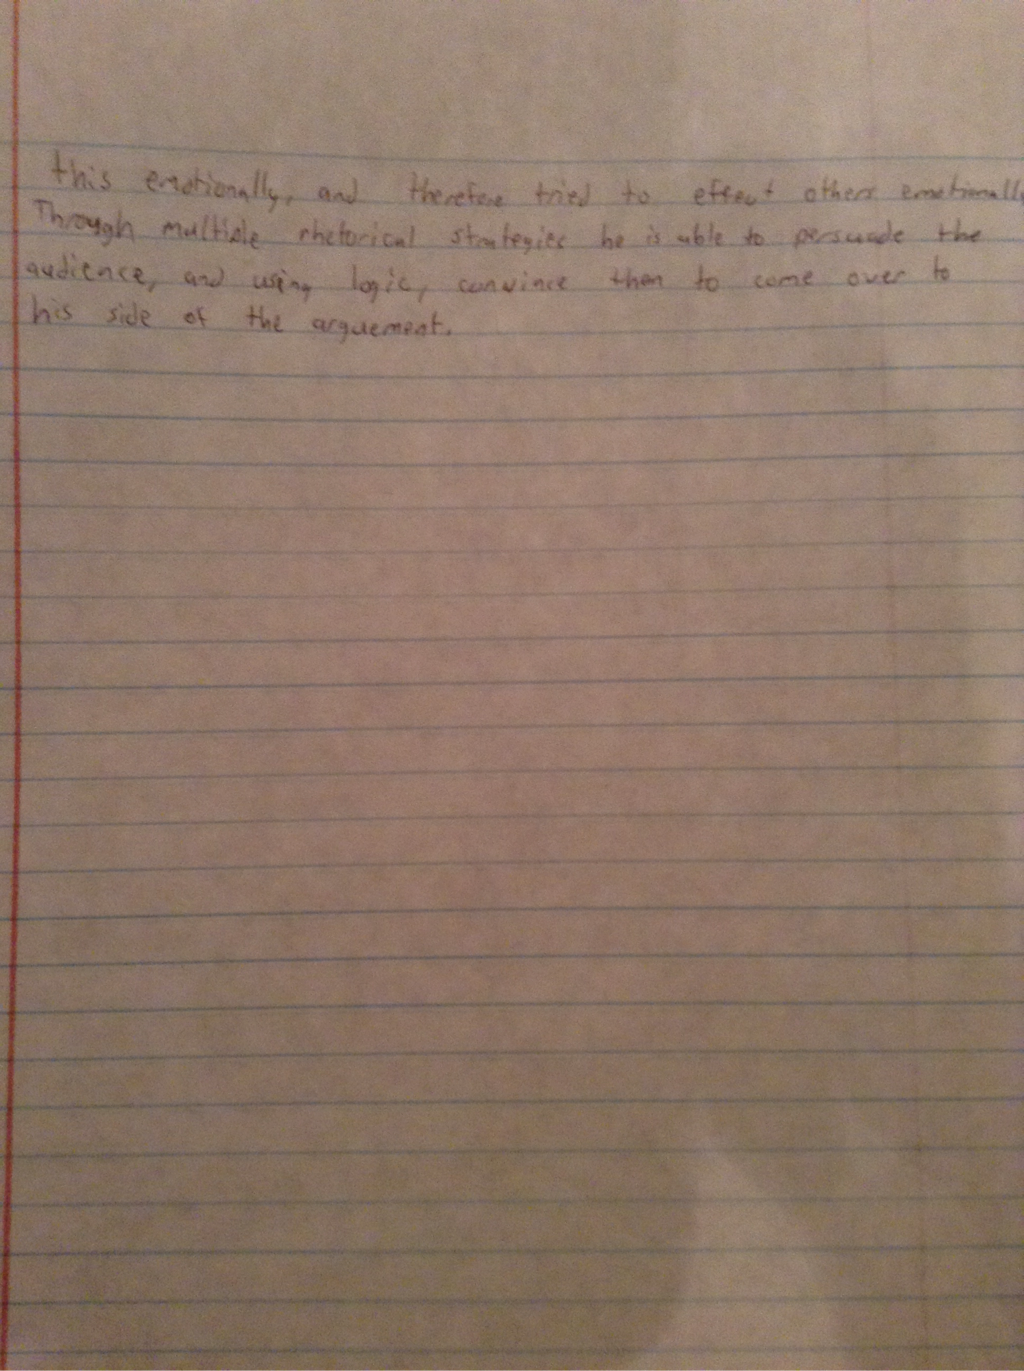 short analysis essay nate ellsworth s junior portfolio this is the original essay typed